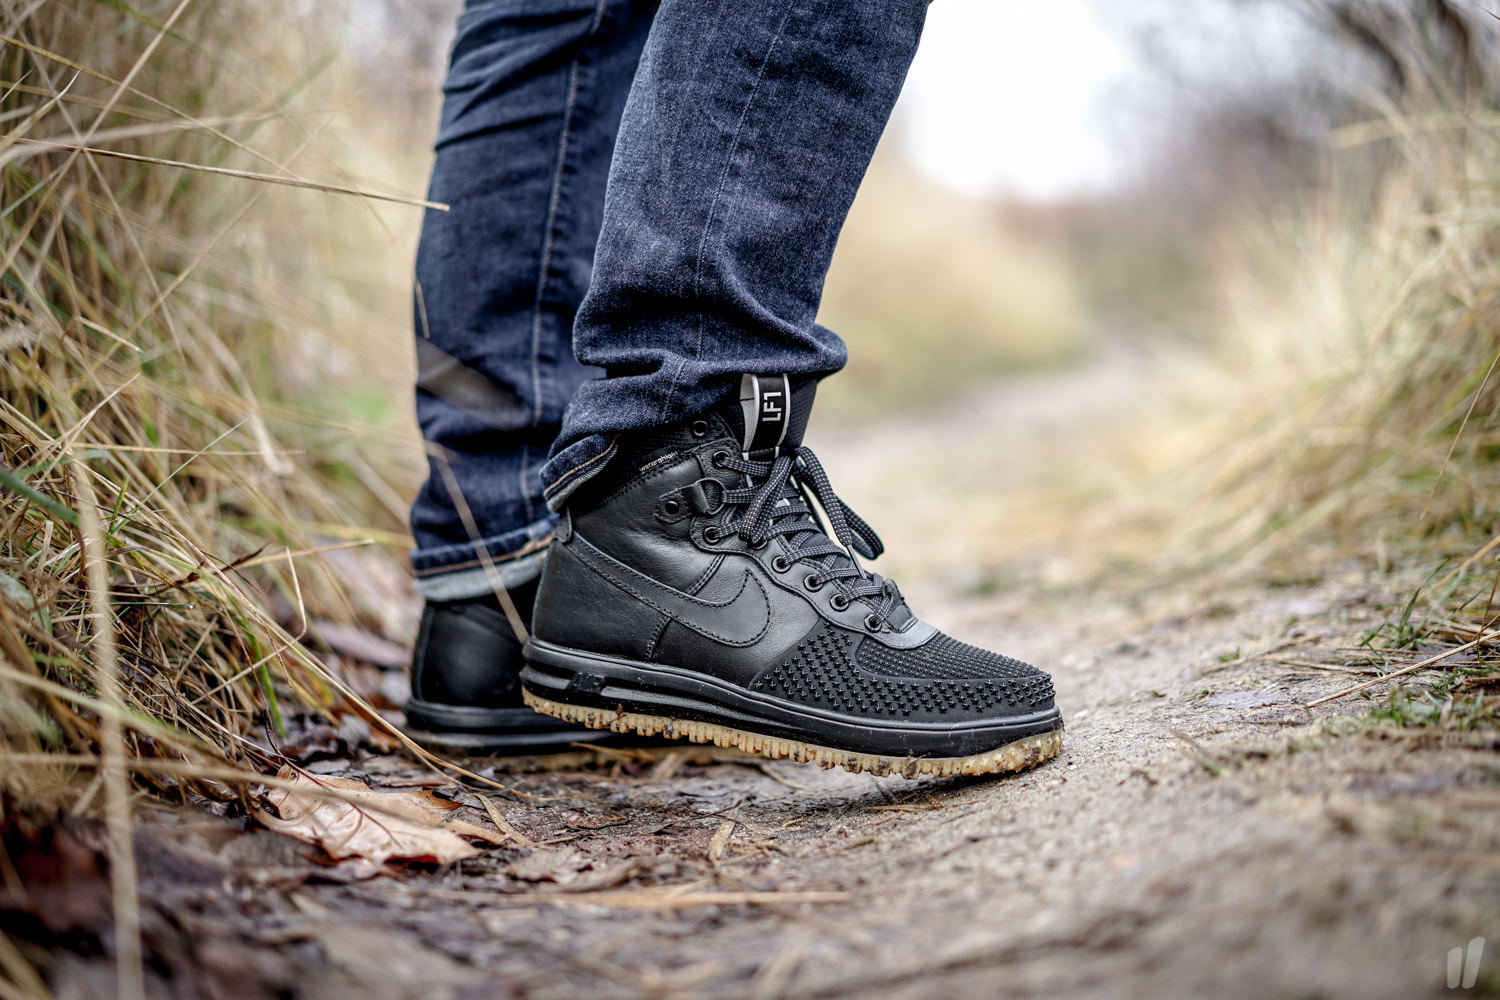 8a31055487c6 Nike Lunar Force 1 Duckboot Black Metallic Silver - Air 23 - Air ...